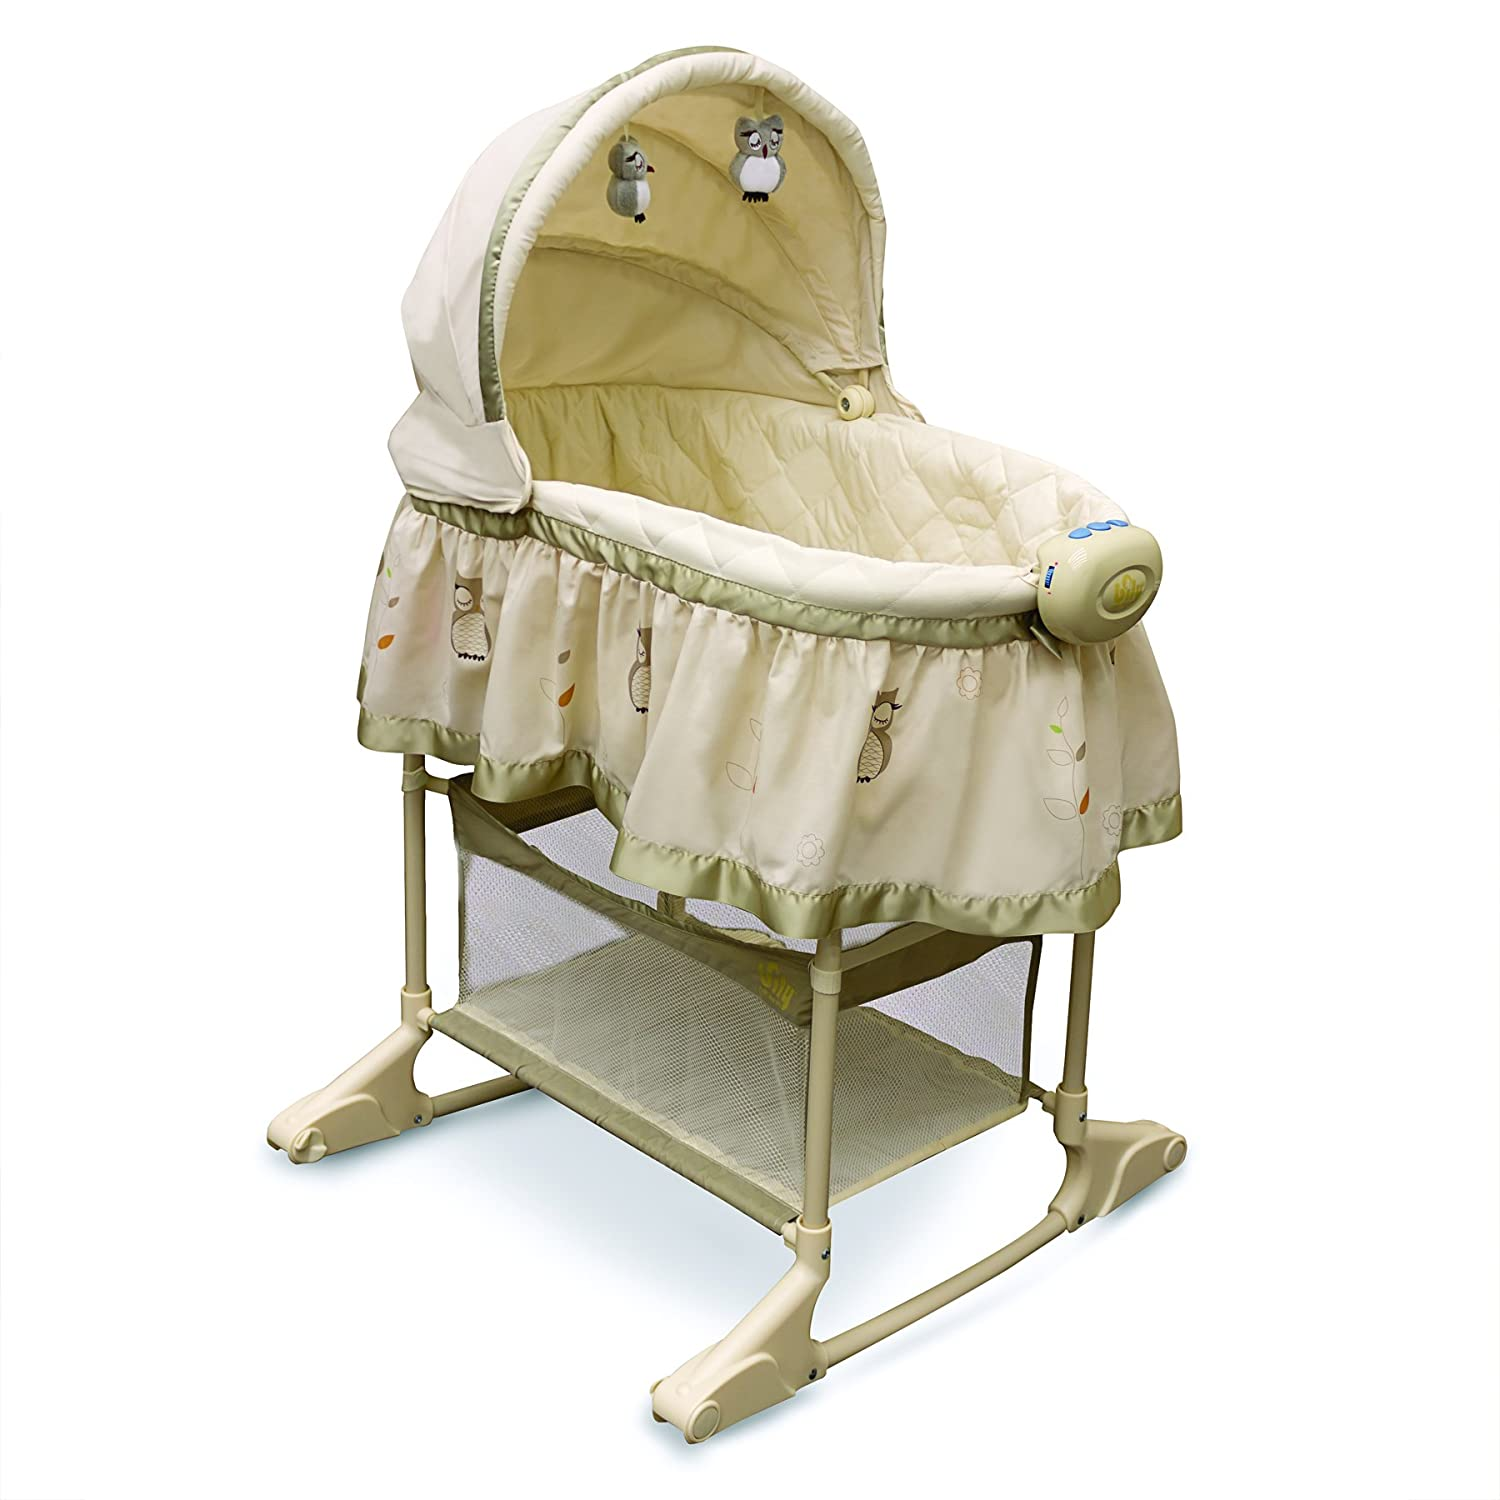 Bily 2-In-1 Bassinet Owl, Light Brown B4410OWL